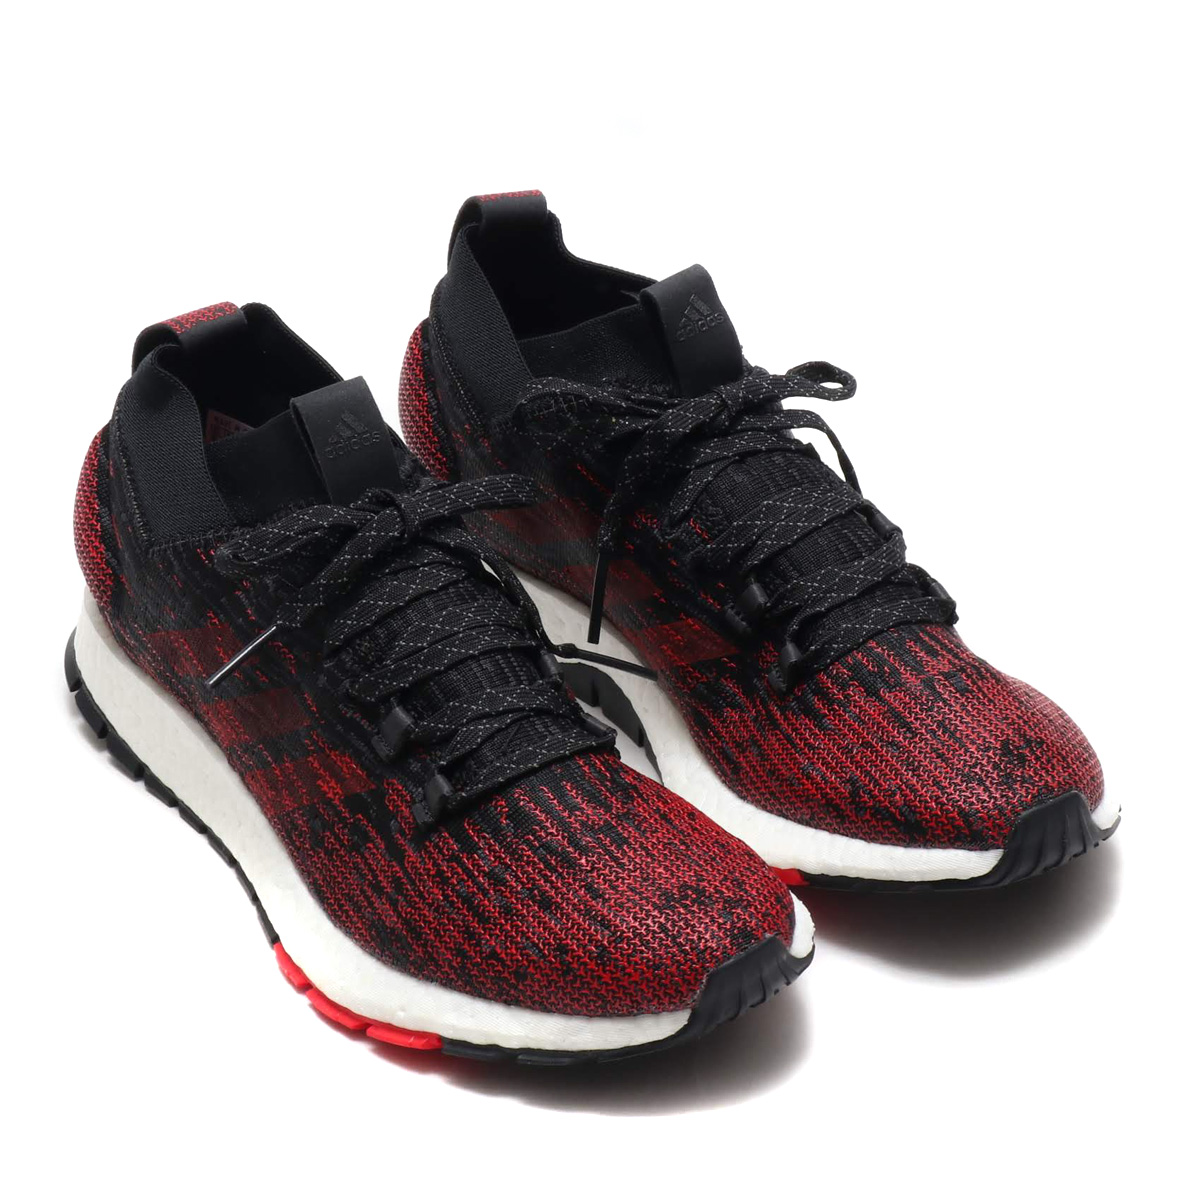 really comfortable Discover coupon codes adidas PureBOOST RBL (Adidas pure boost RBL) core black / scarlet / scarlet  18FW-I